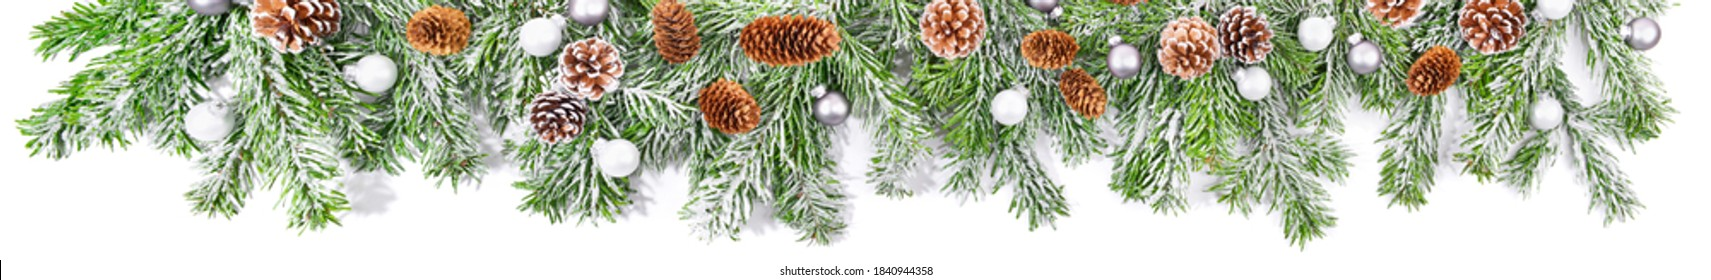 Christmas Fir Brnaches with Snow  isolated on white Background - Super Wide Panorama